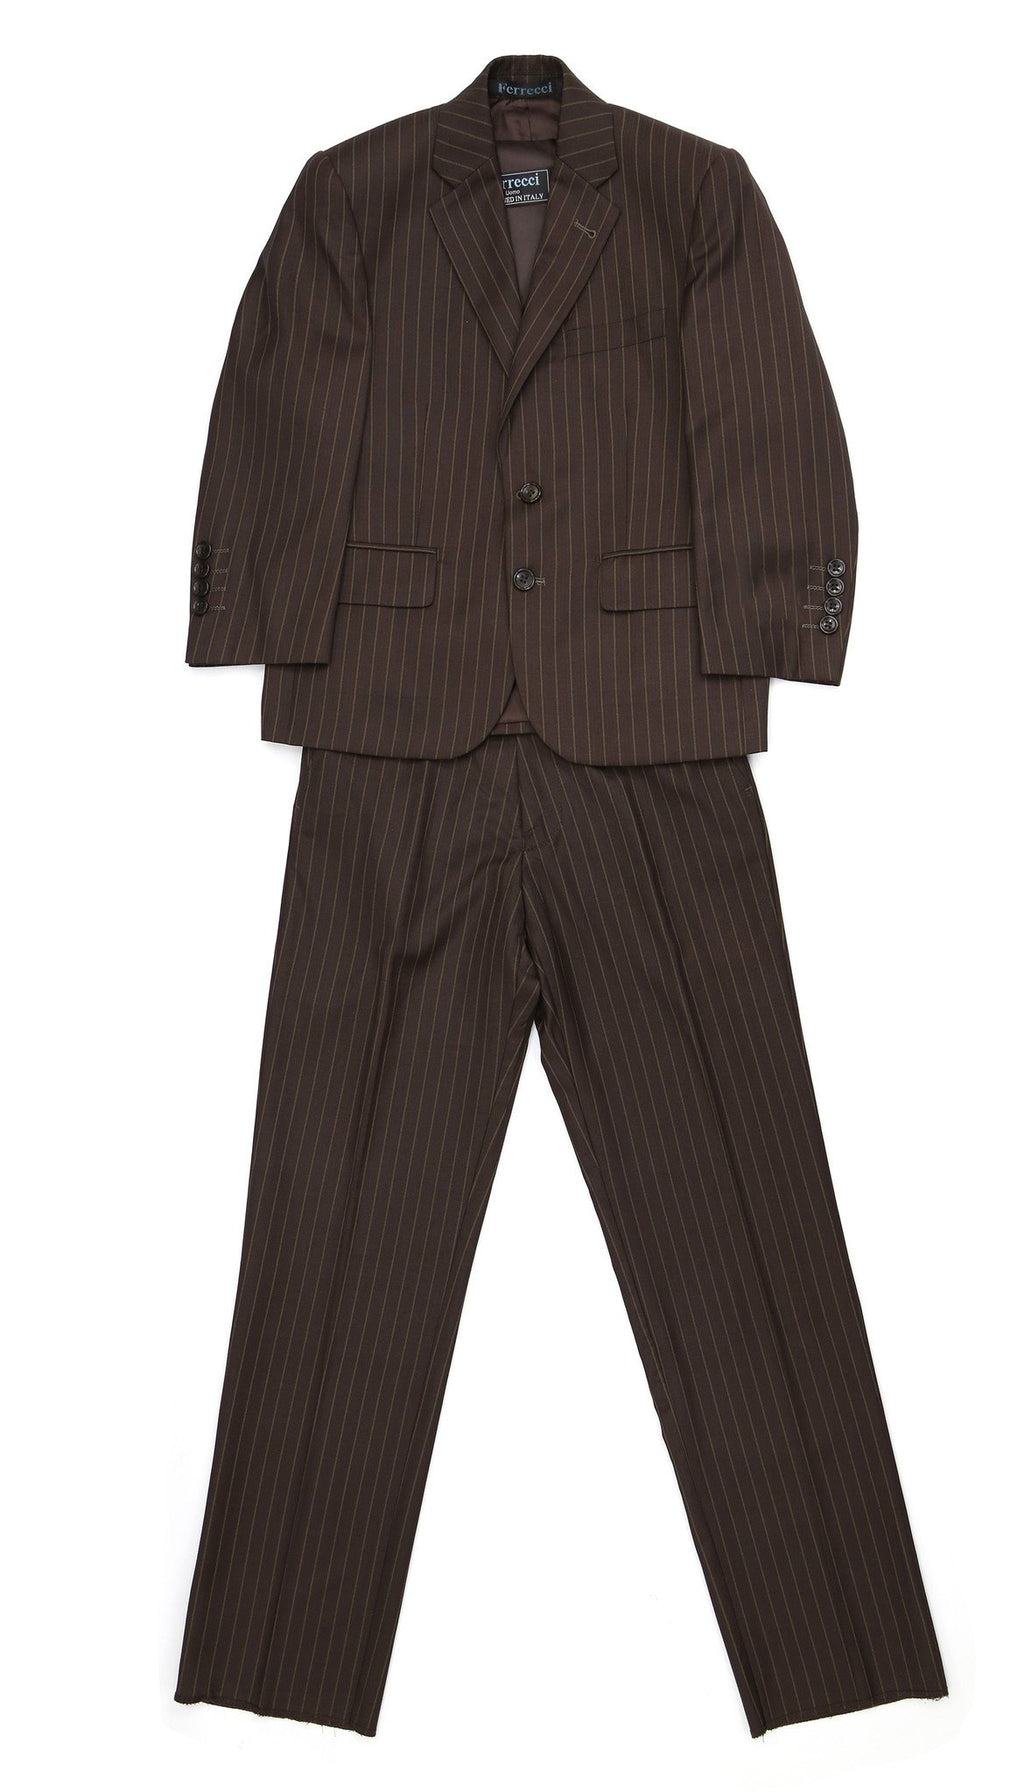 Boys Premium FSK32 Brown Pinstripe 3pc Suit - Giorgio's Menswear